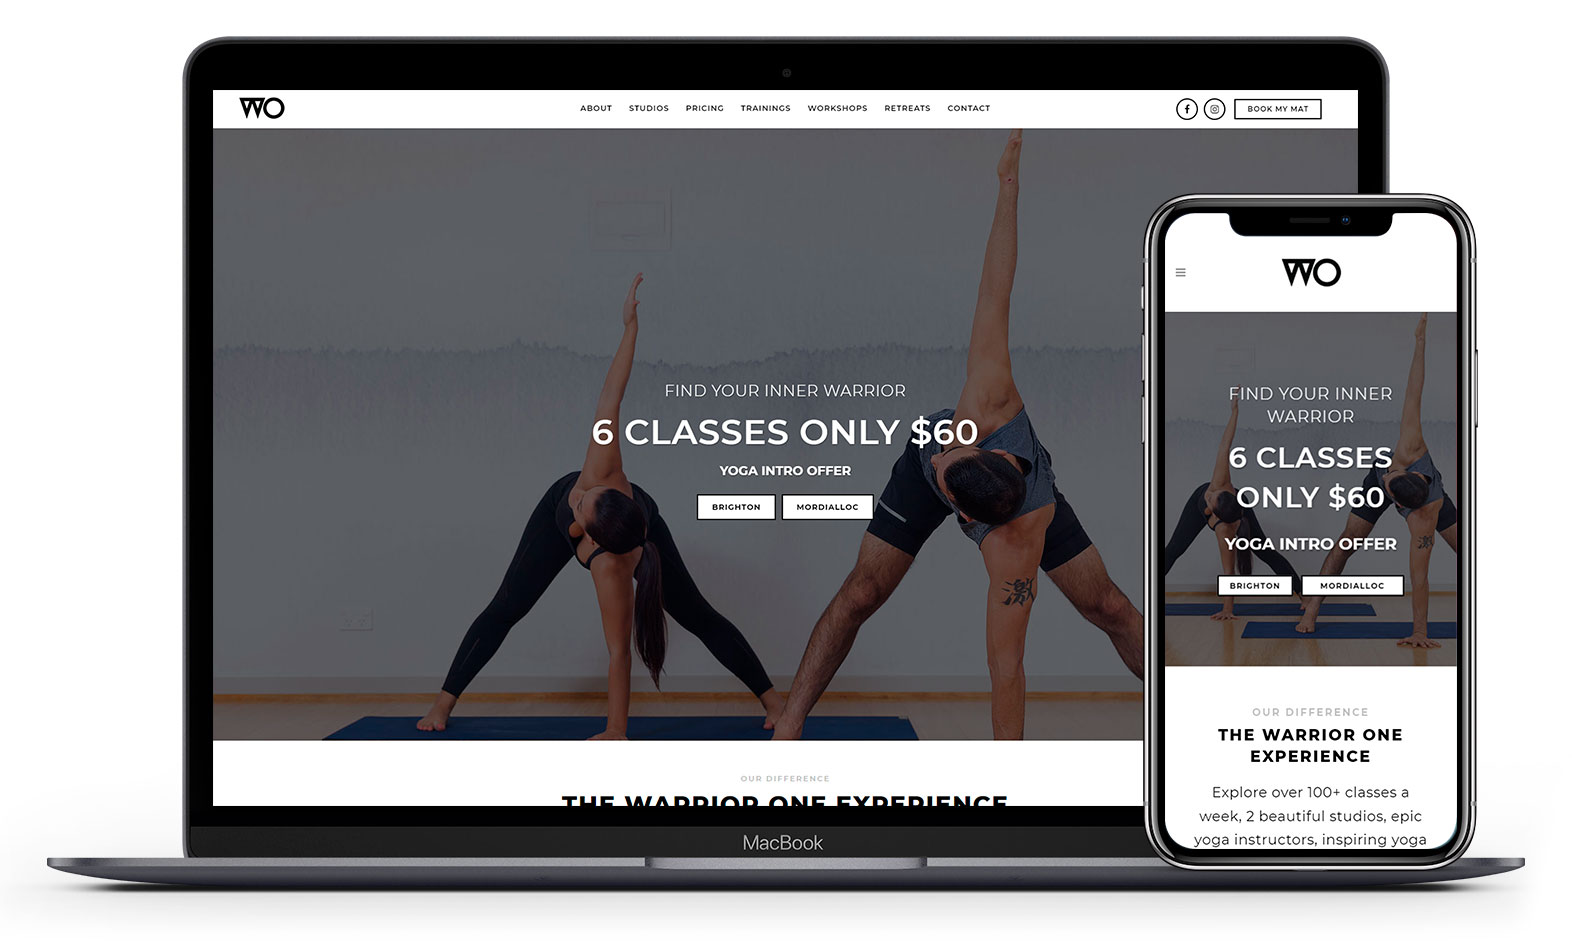 Warrior One Yoga's website design displayed responsive devices